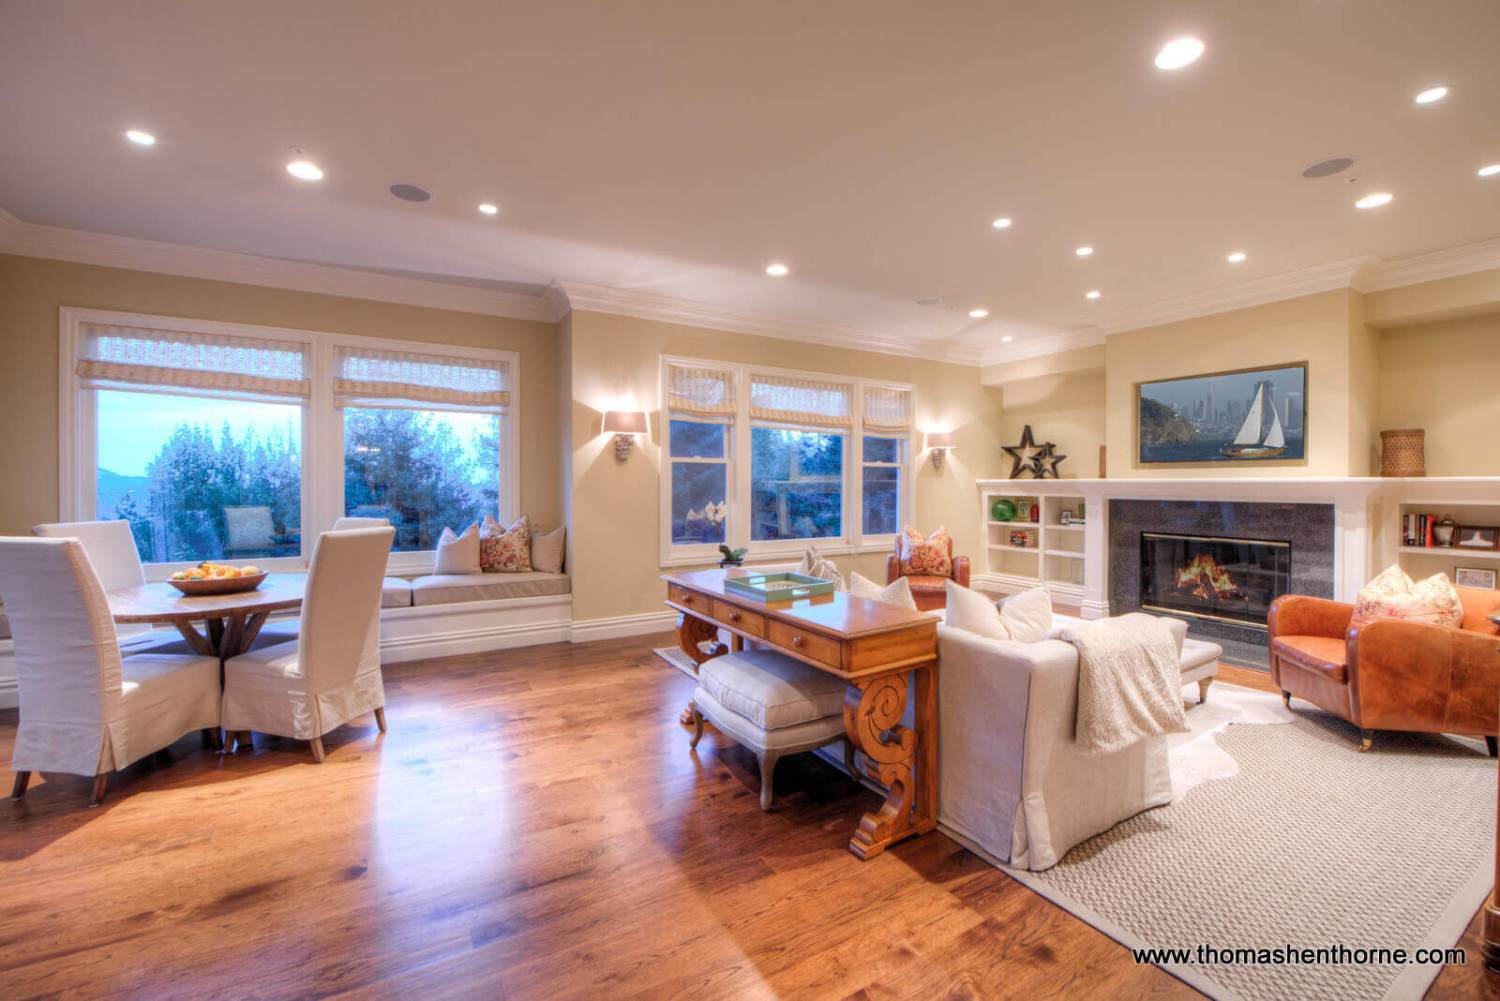 8 woodland place kentfield home for sale sold for 6 100 000